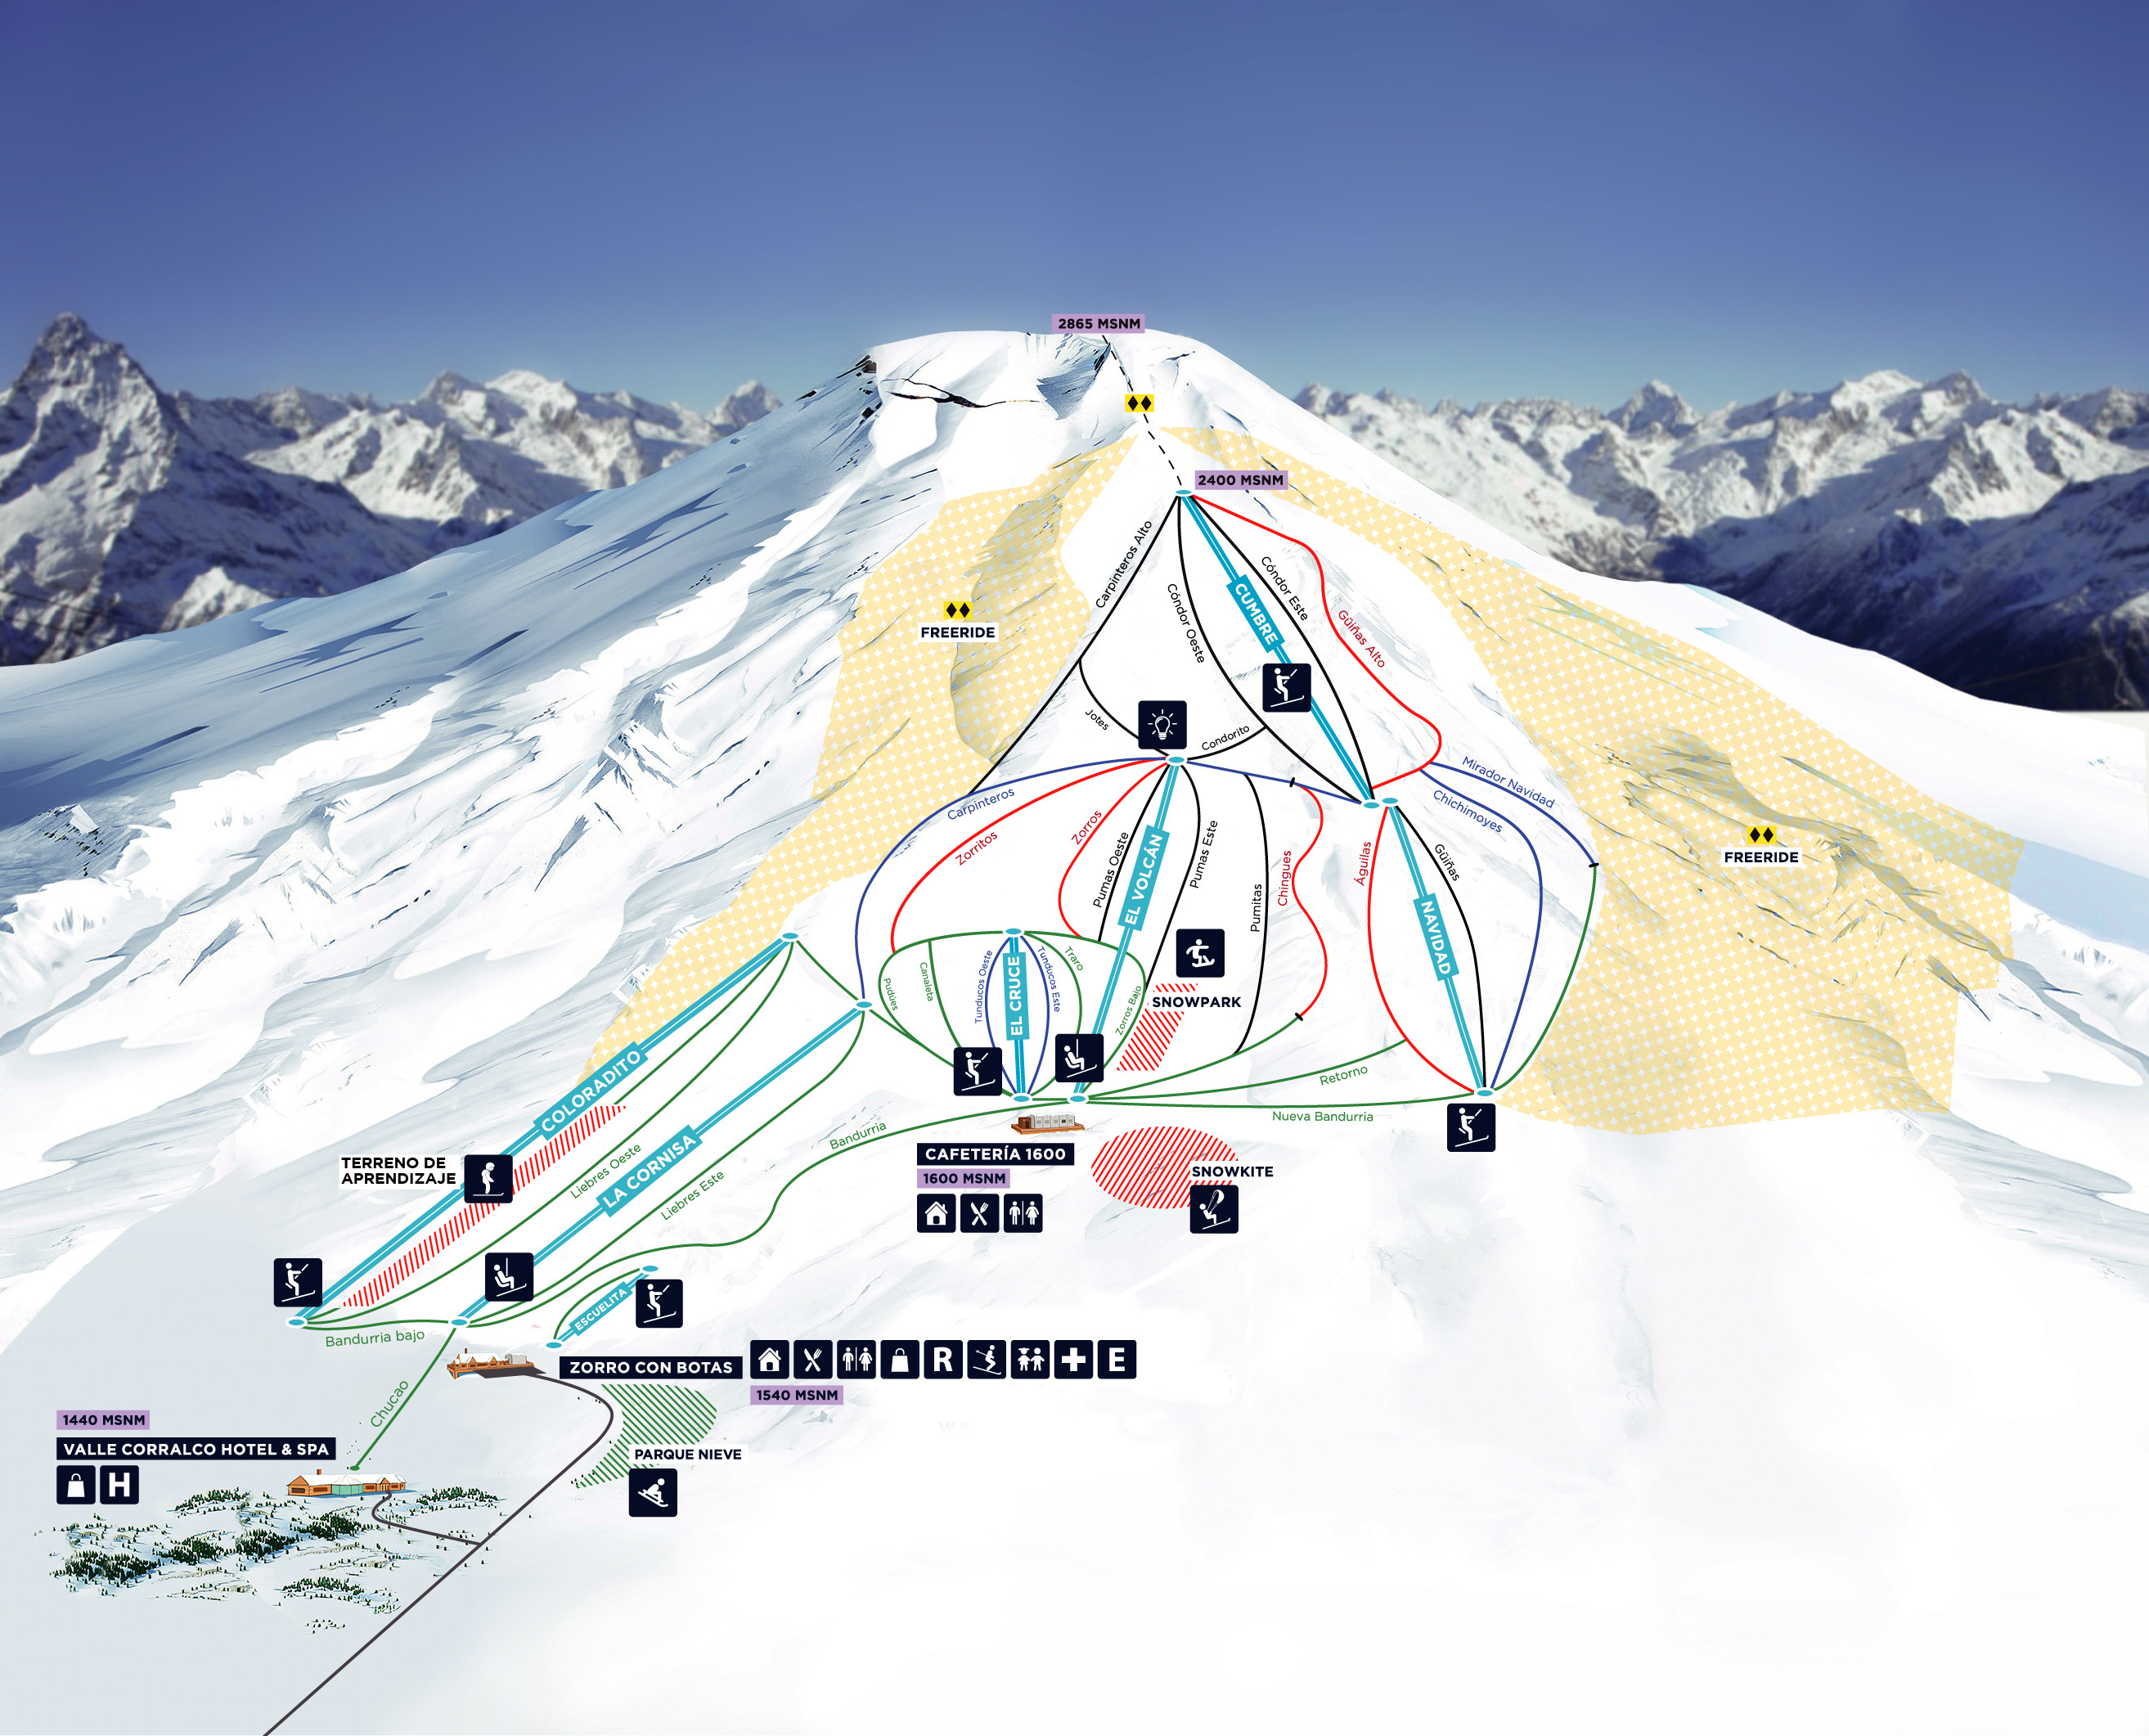 Corralco (Lonquimay) Piste / Trail Map